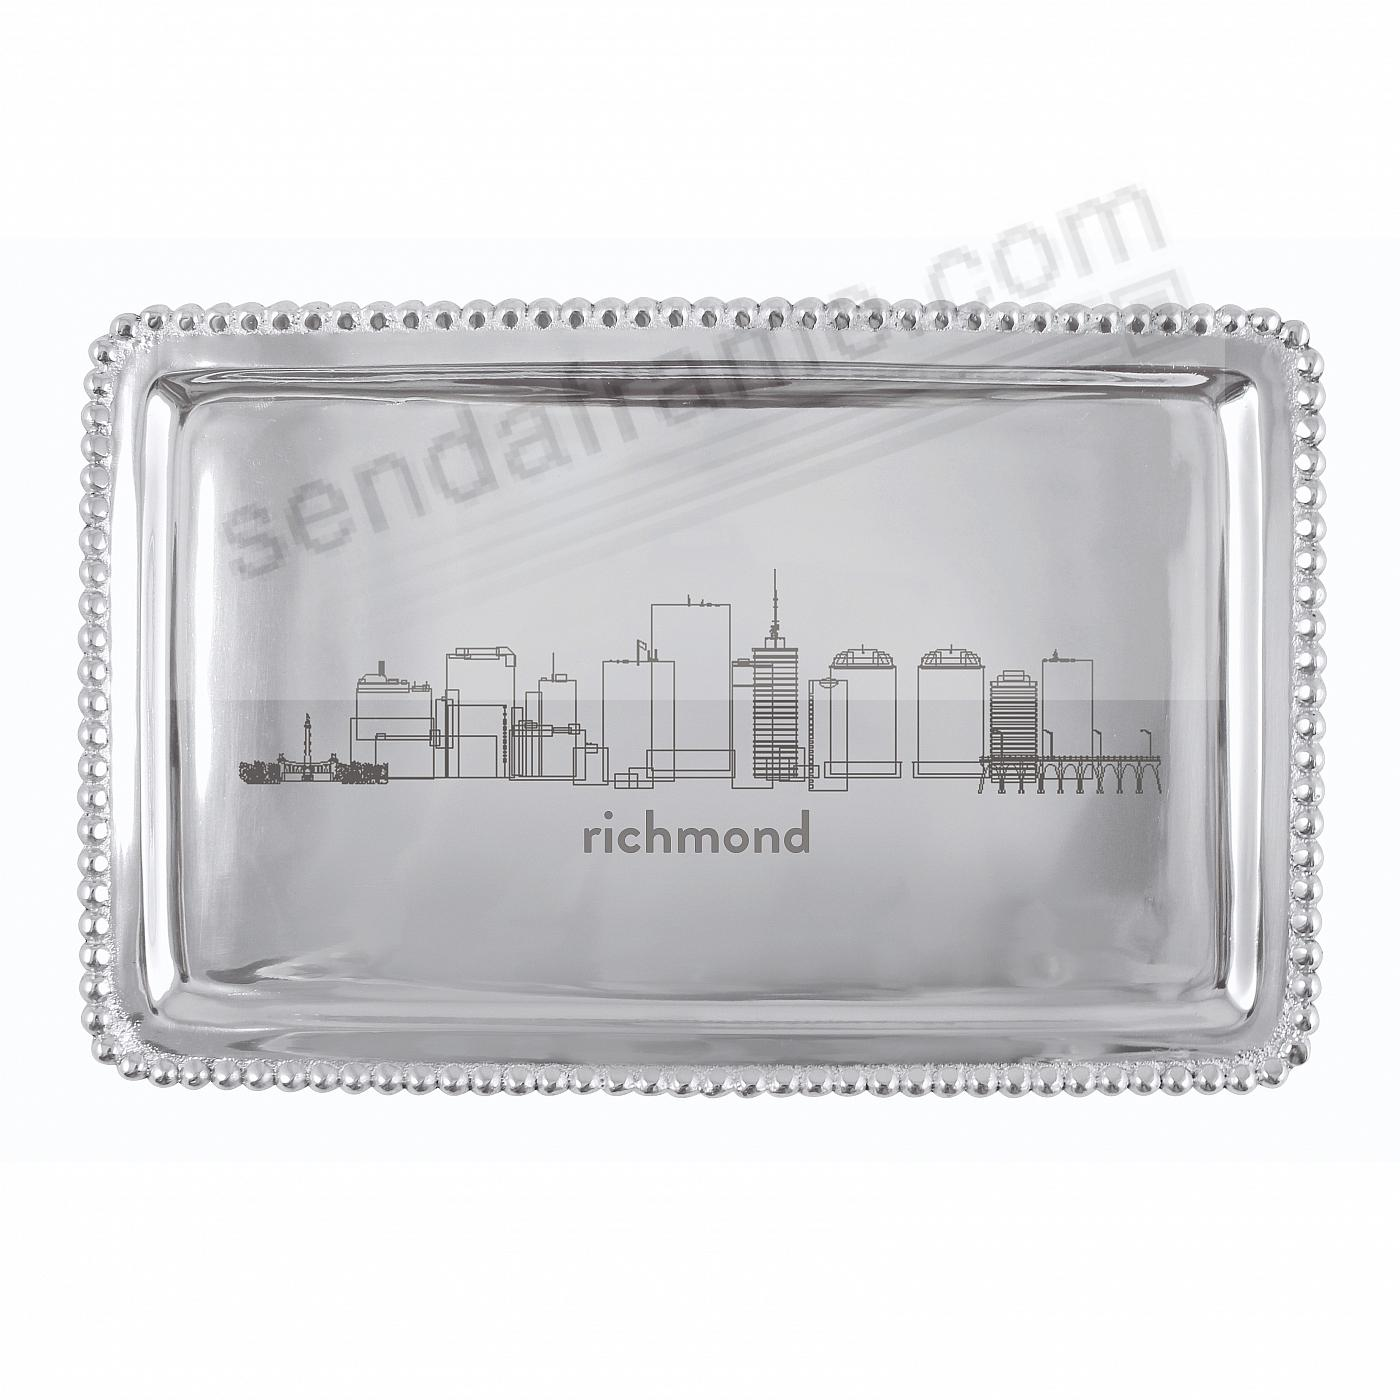 The RICHMOND-VIRGINIA CITYSCAPE BEADED BUFFET TRAY crafted by Mariposa®